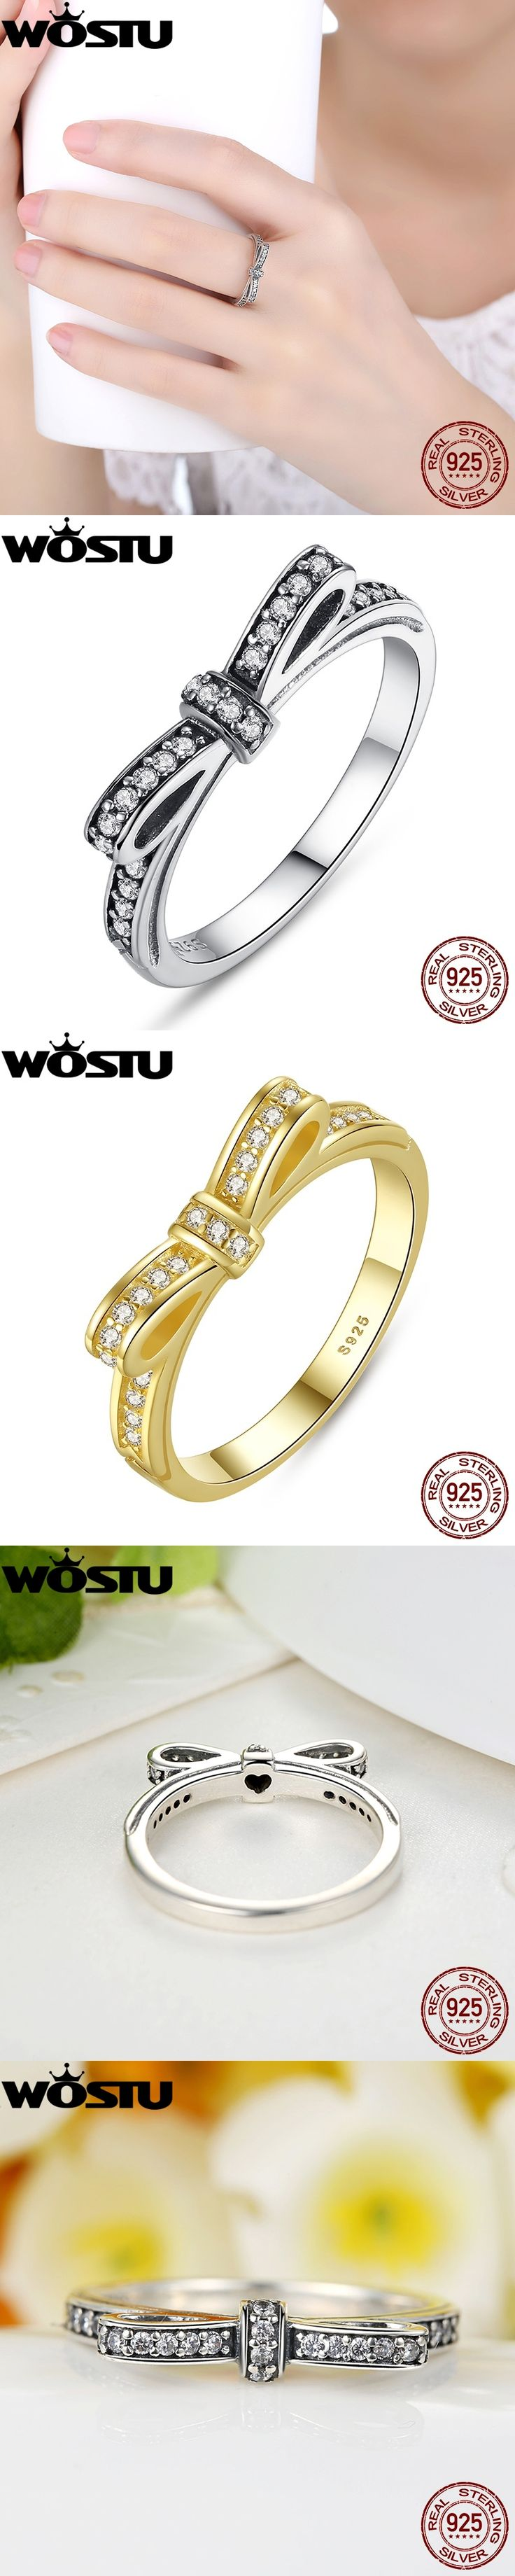 ring def today gold ct free baguette and princess white tdw product g overstock shipping color jewelry watches h yellow diamond cut